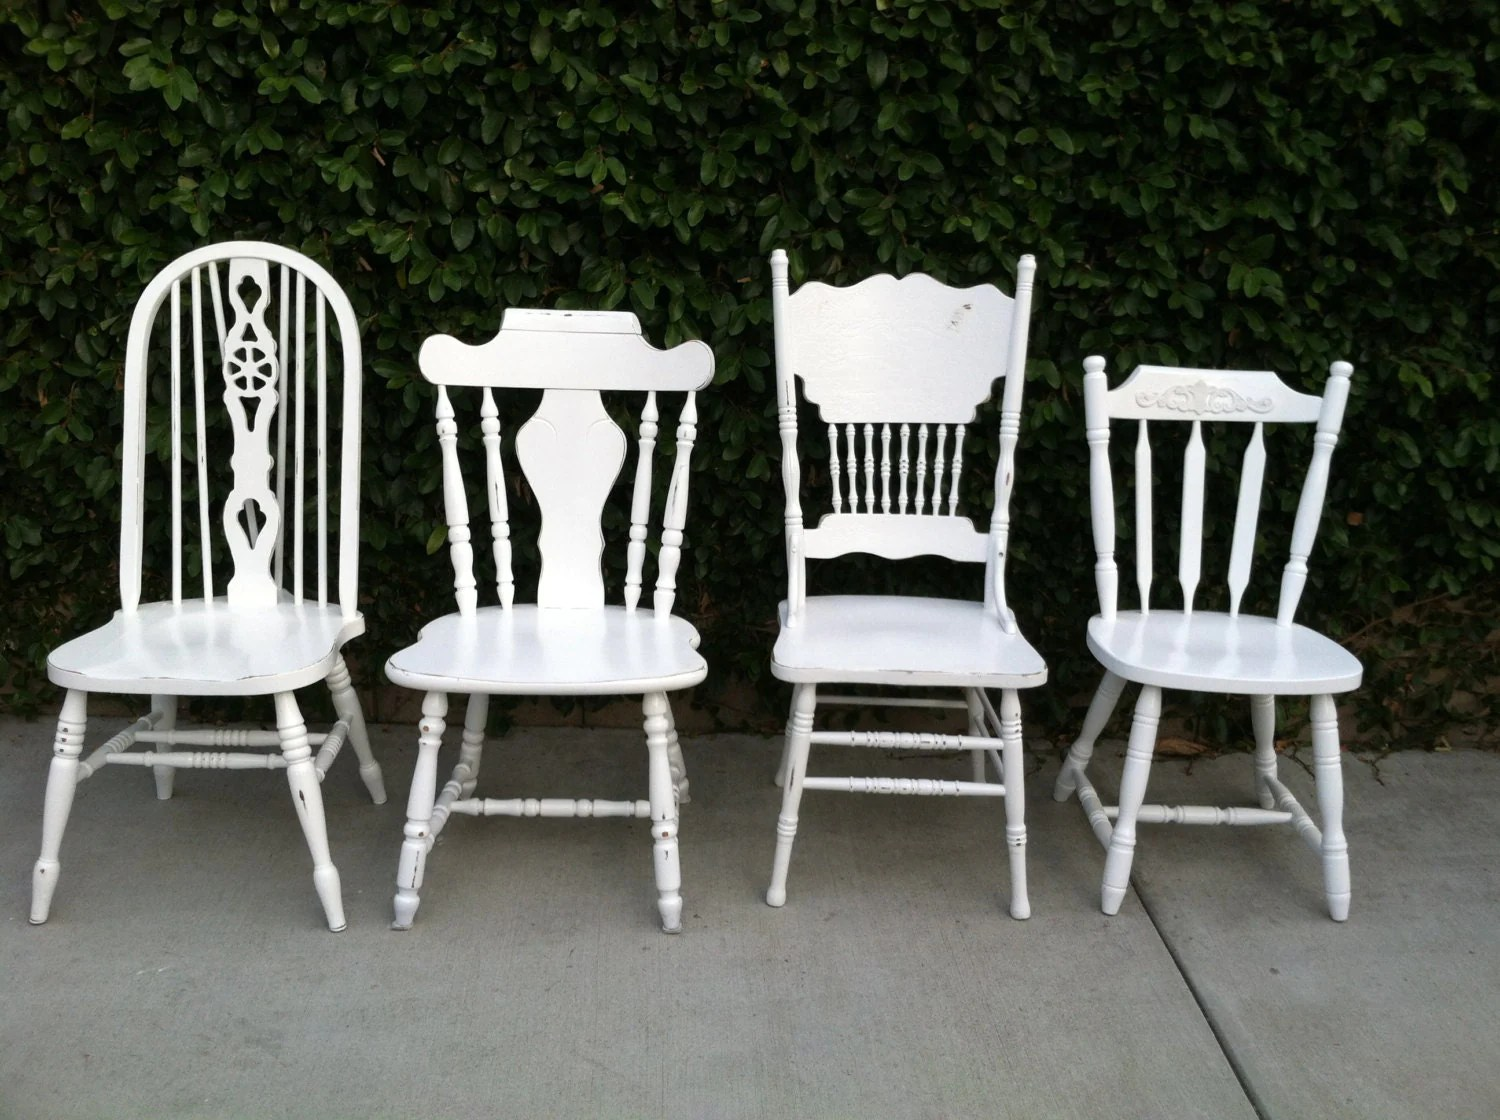 white dining chairs set of 4 steel chair hire mismatched shabby by